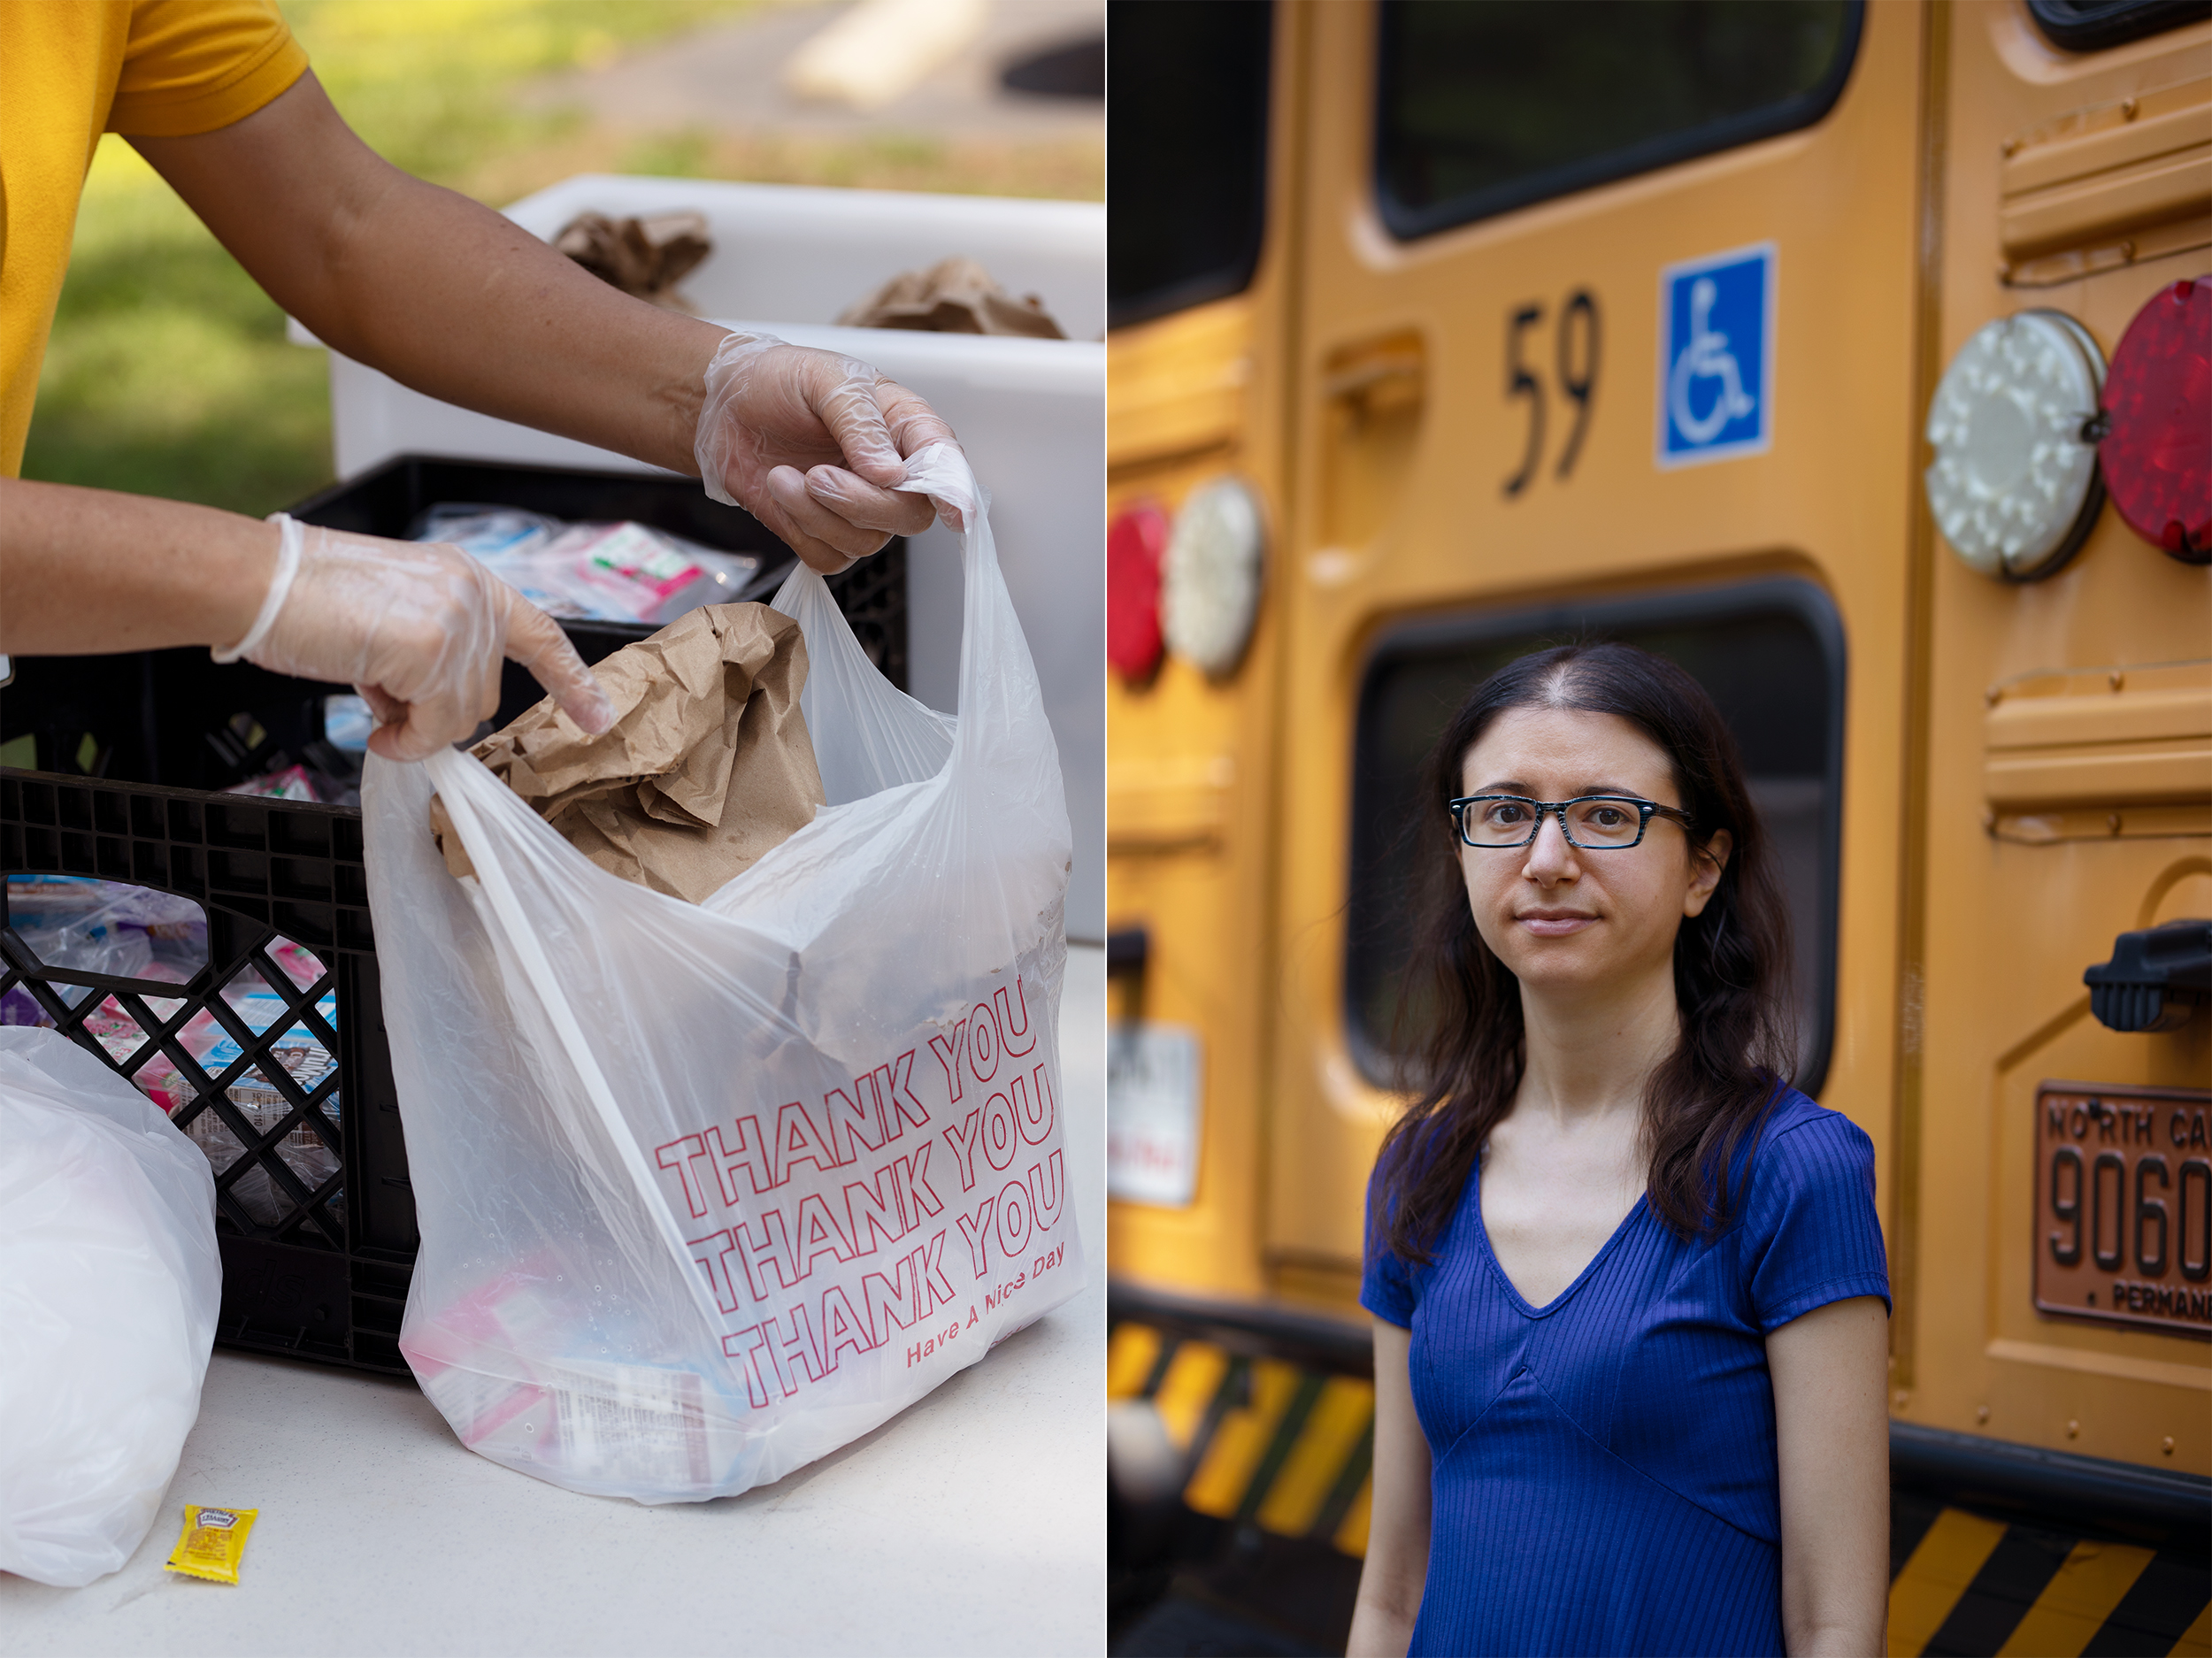 On the left, a person packs a bag with food. On the right, Jessica Soldavini poses for a photo never to a school bus.